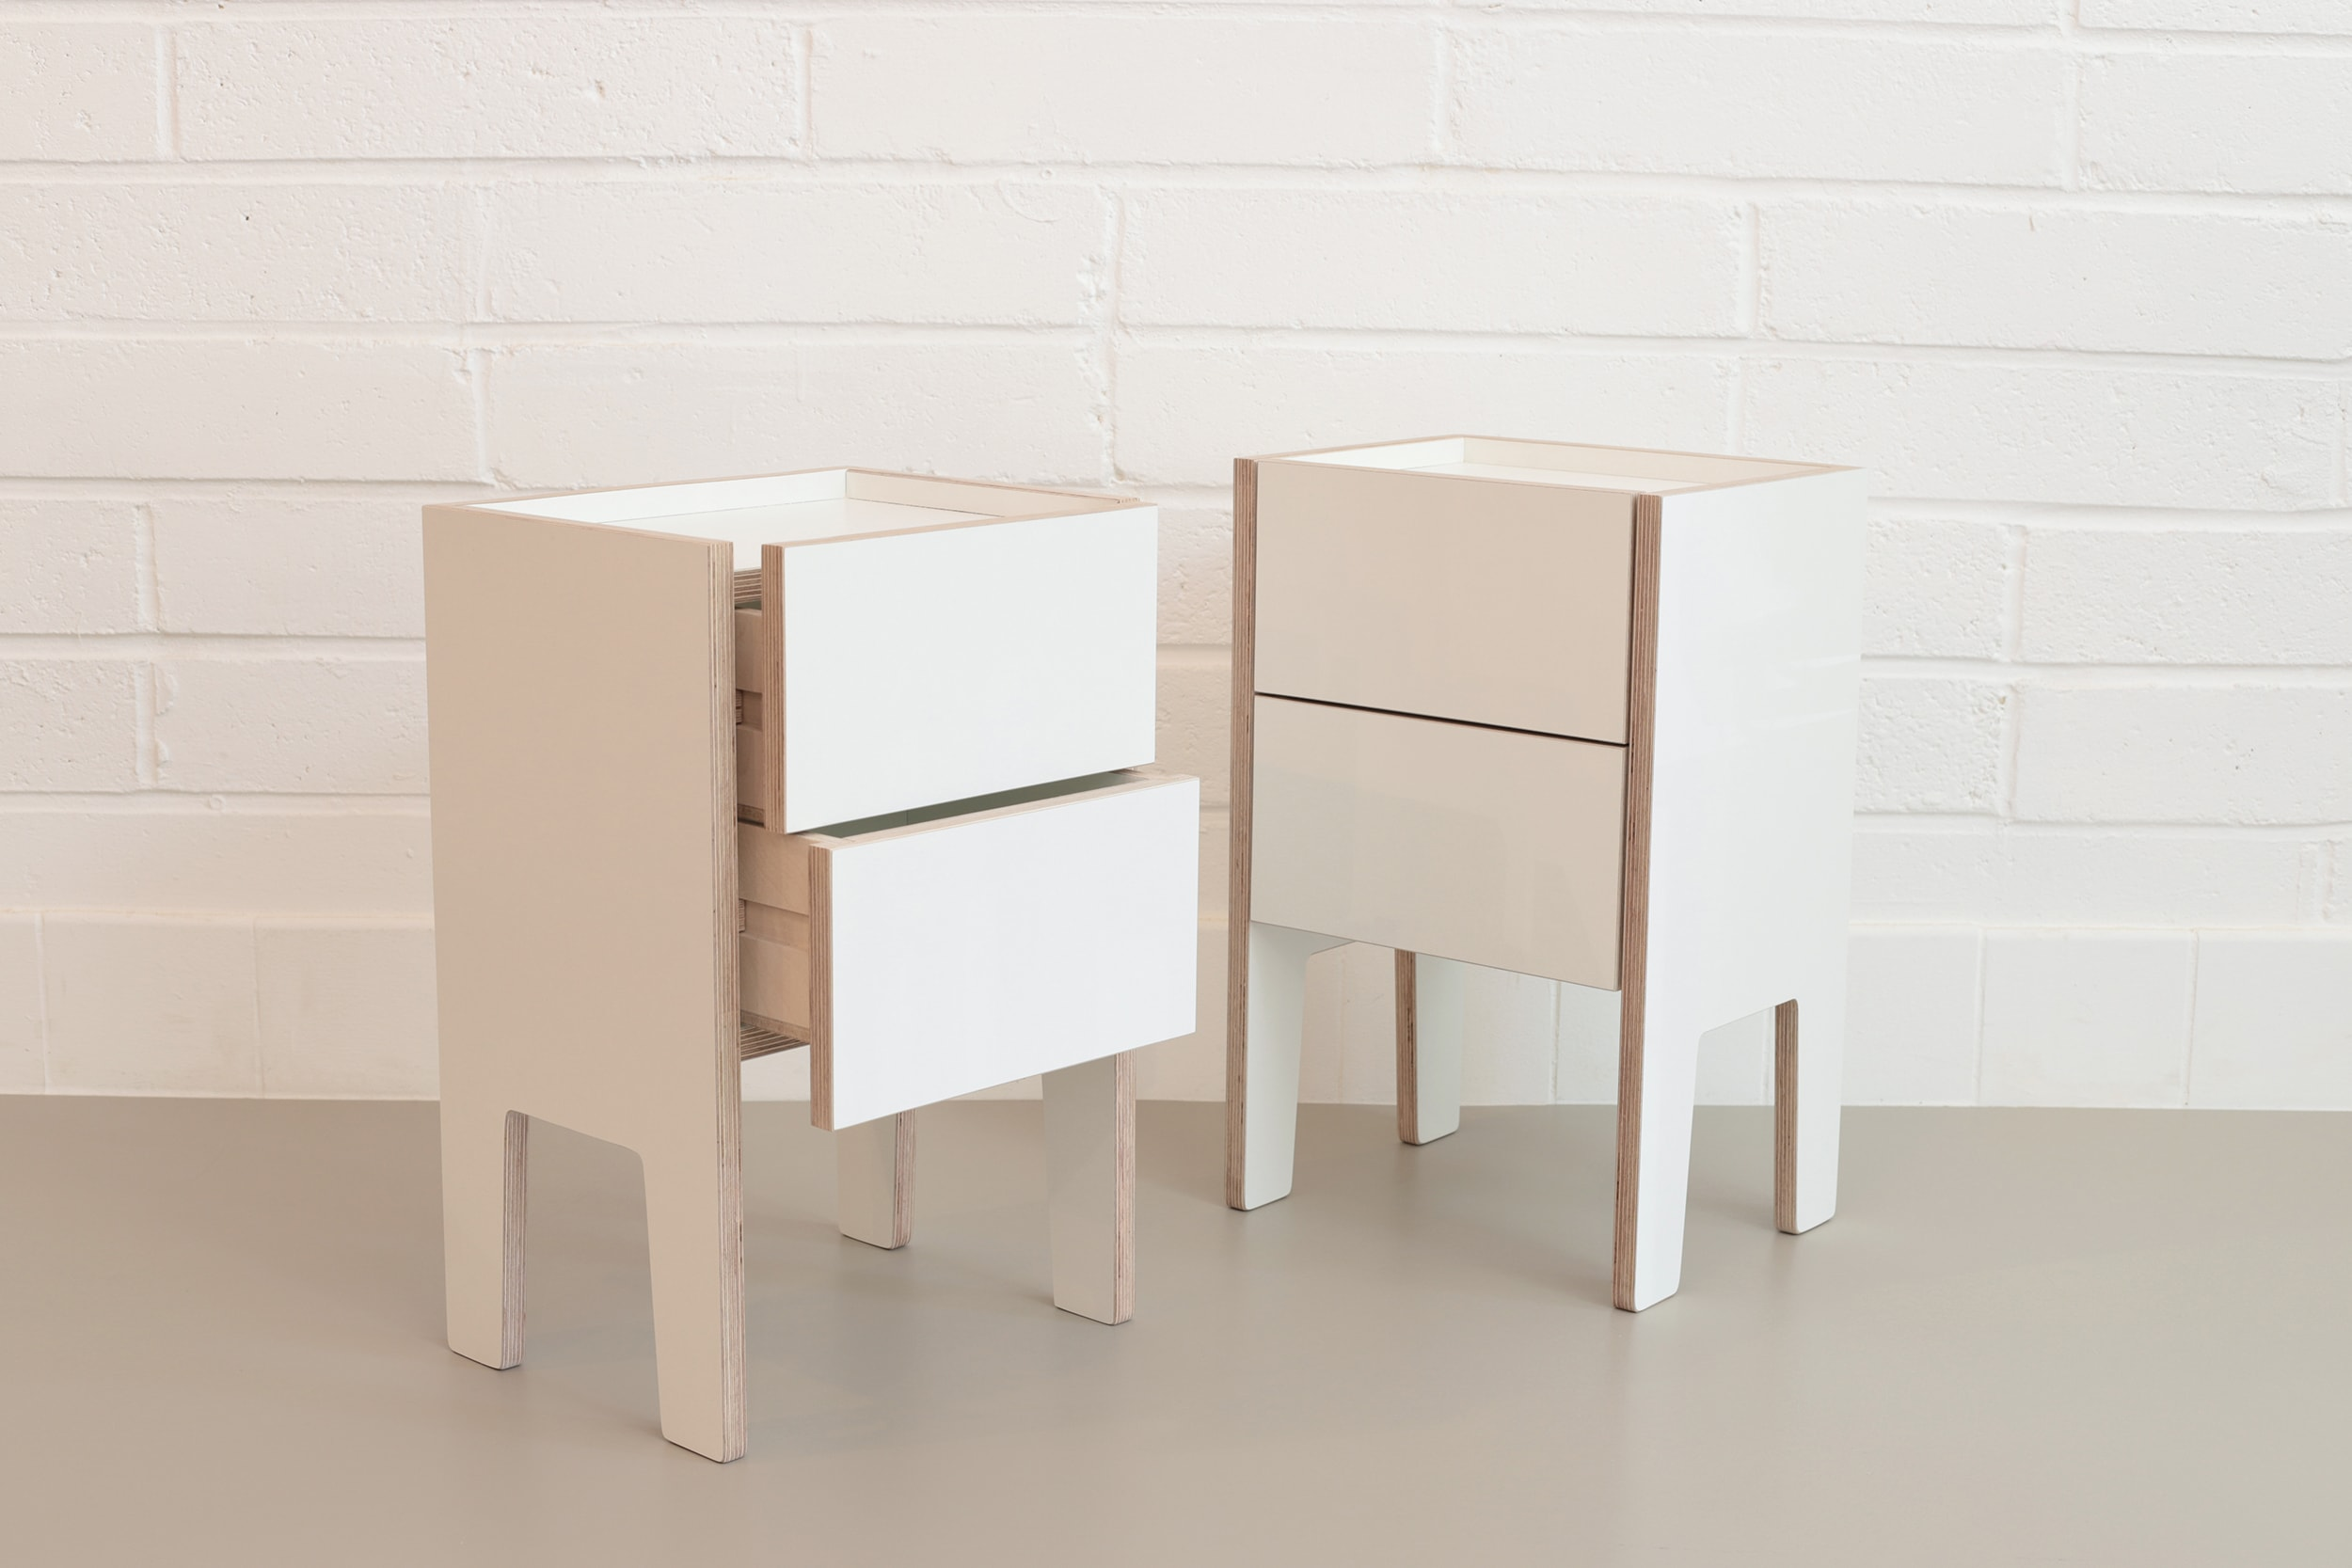 Order 322 - Bedside tables2 WEB-min.jpg